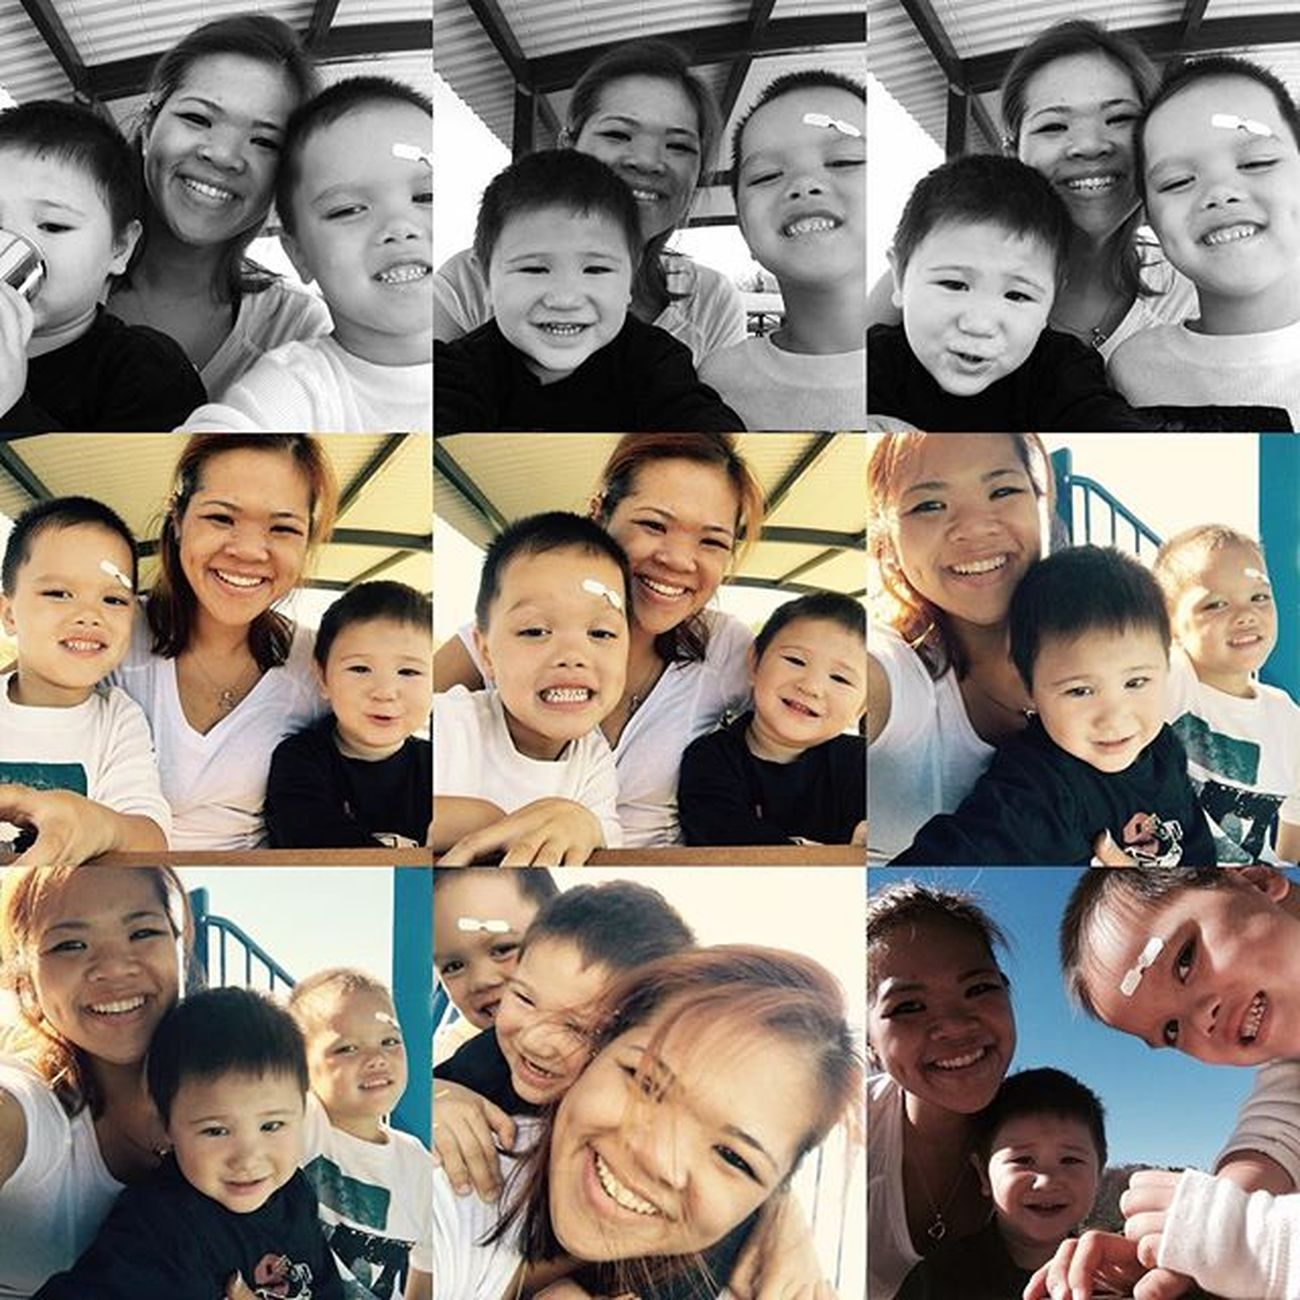 Singlemomlife UnconditionalLove Blessed  Thankyoujesus Life Motherhood Fallweather Proudmom Overcomingobstacles Overcomingchallenges Love Family Mygingerasians